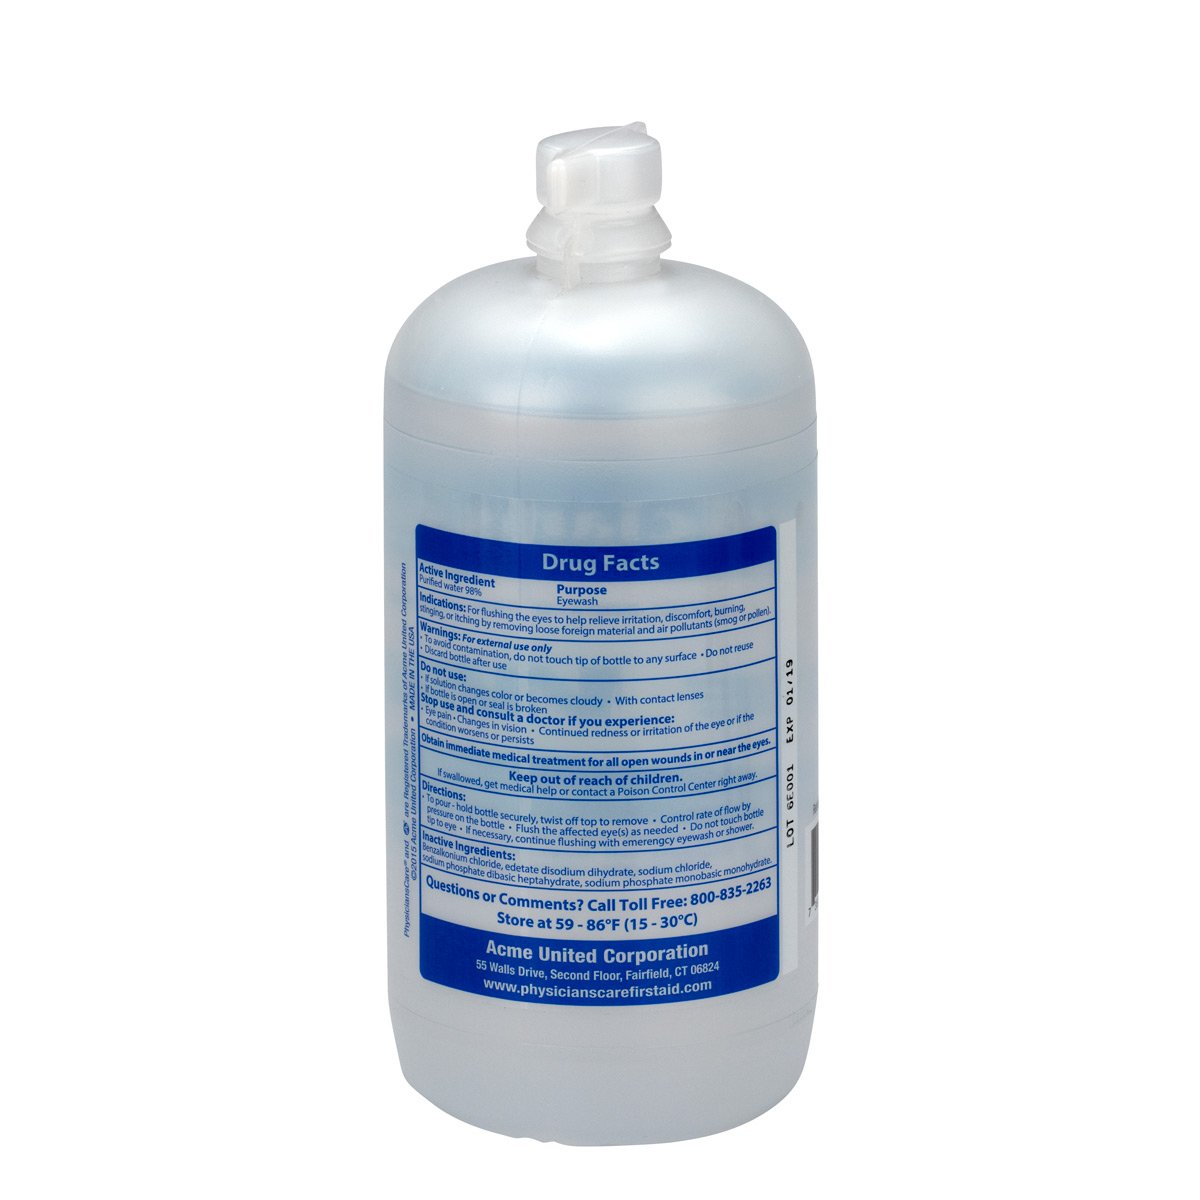 PhysiciansCare by First Aid Only 500-90547 Eyewash Bottle, 32 oz. (Pack of 12) by First Aid Only (Image #4)